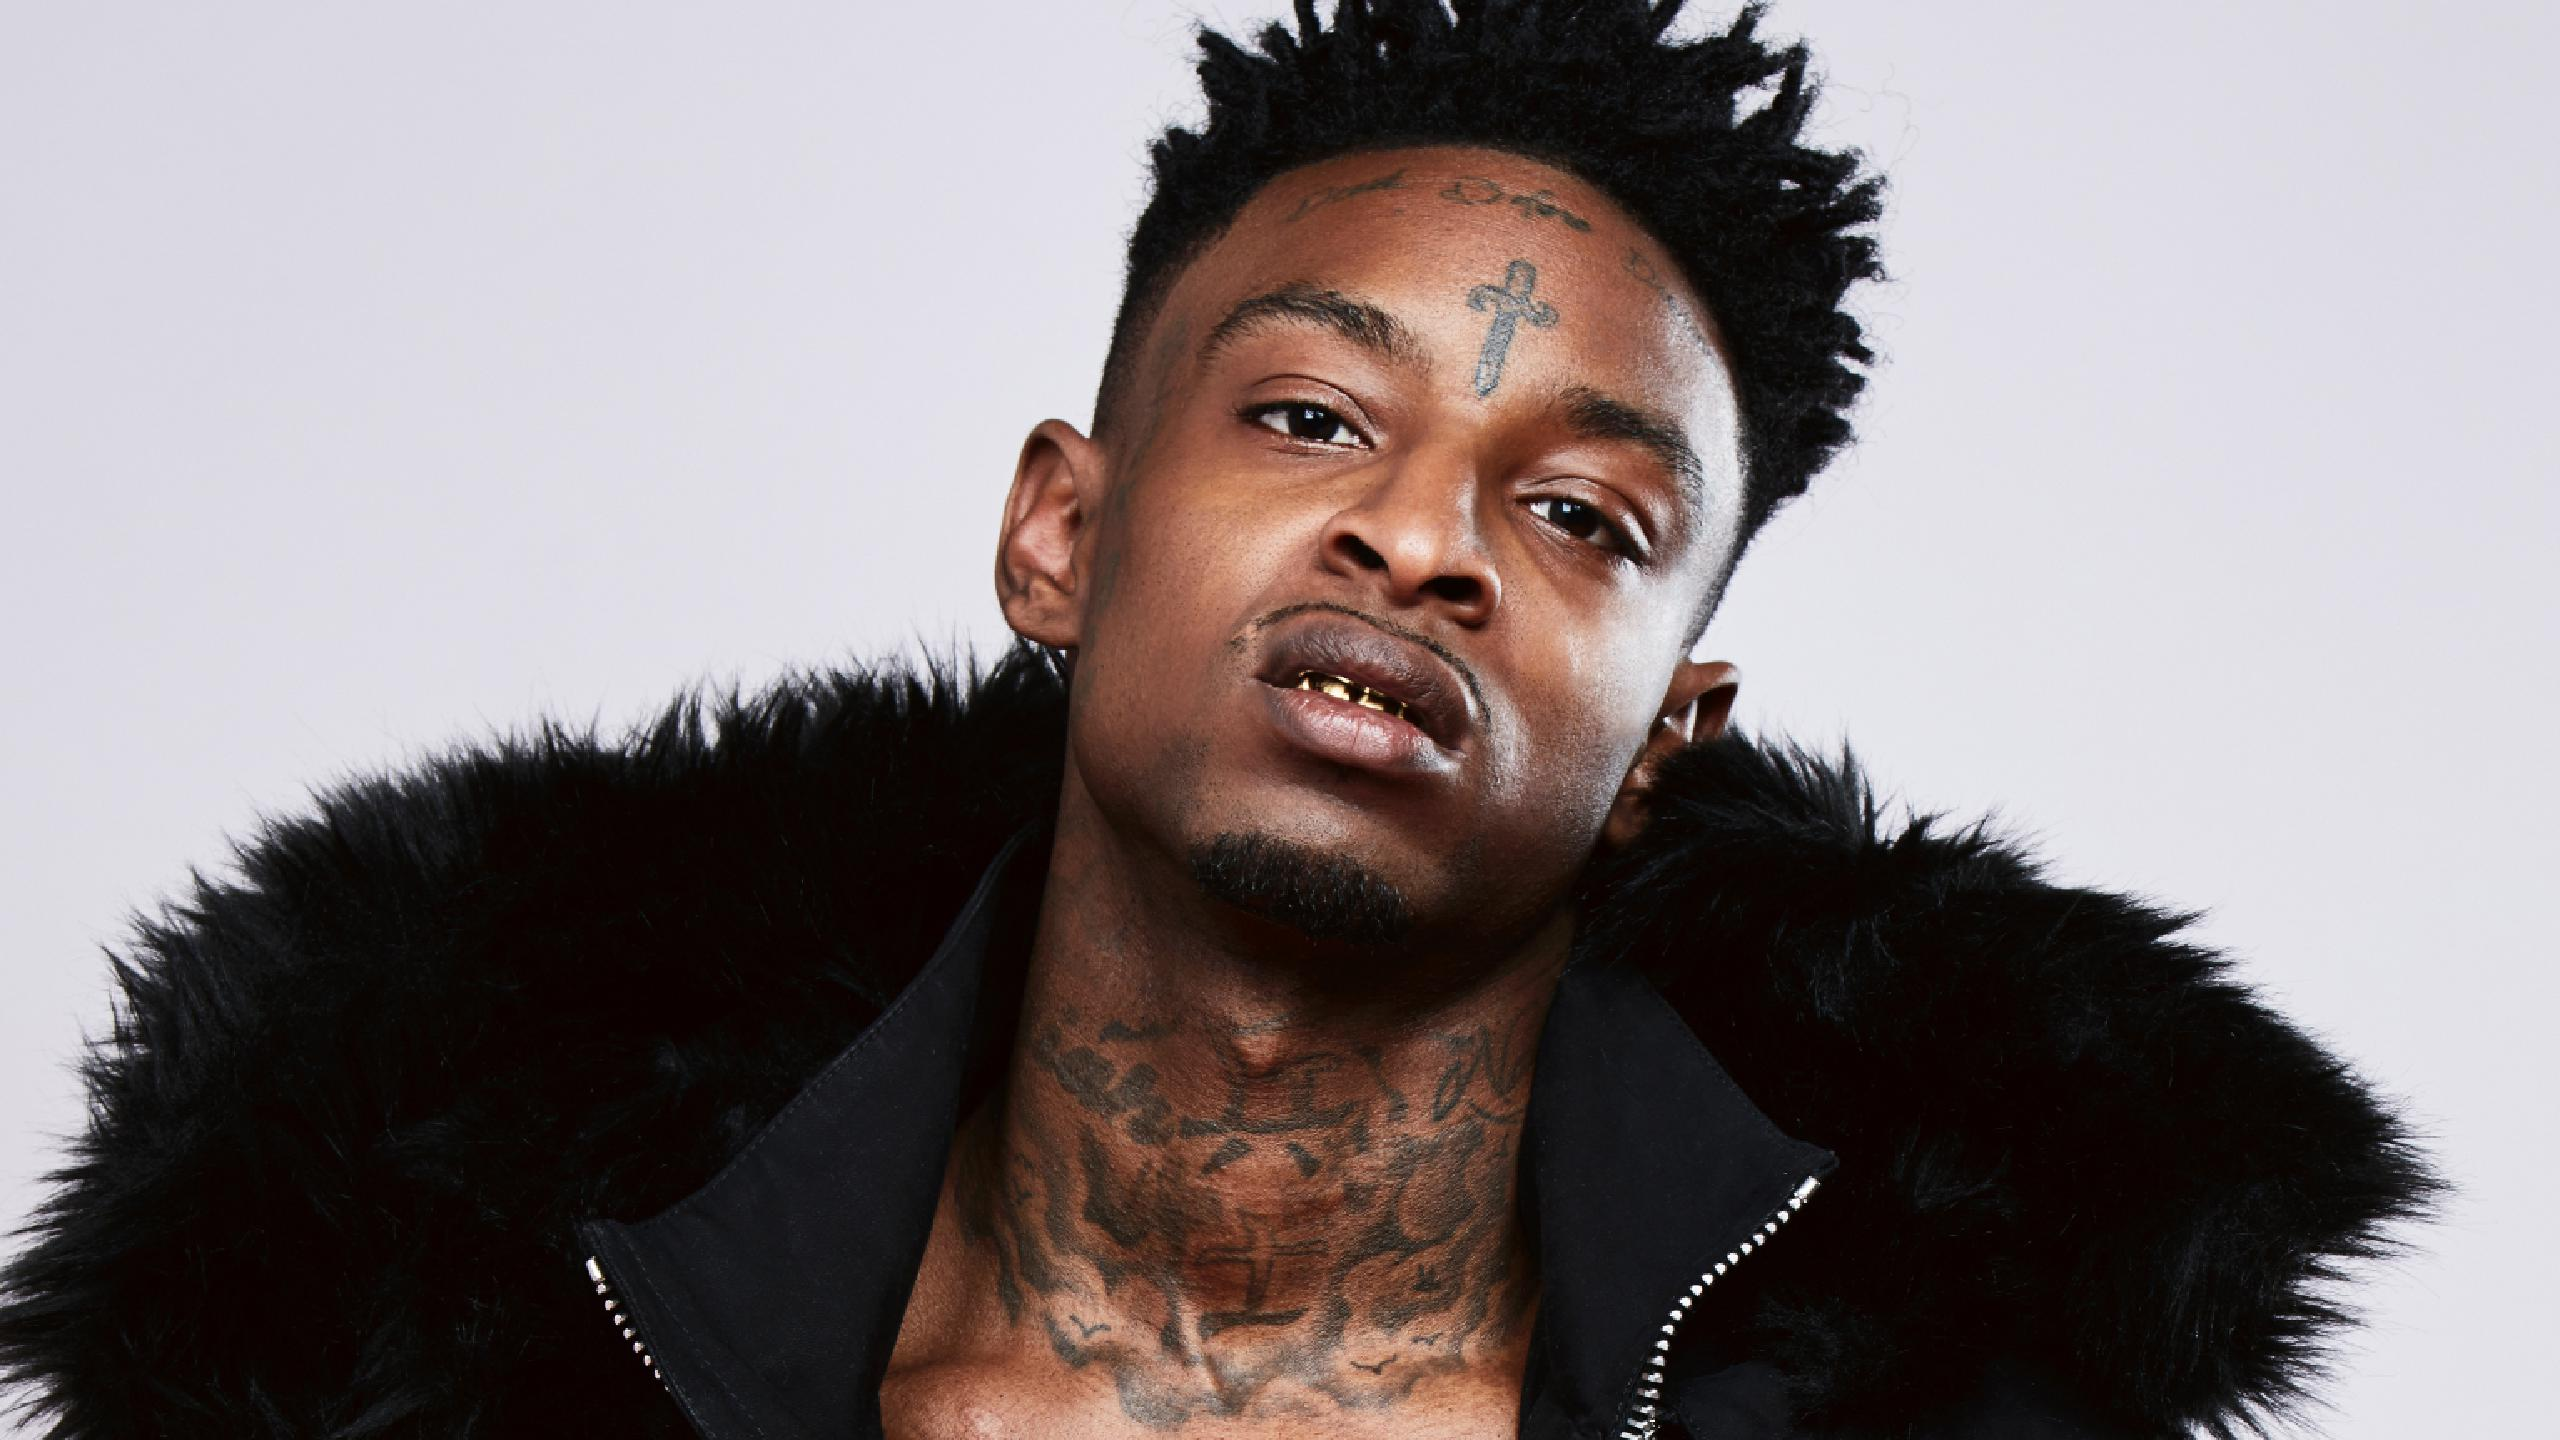 21 Savage Tour 2020 21 Savage tour dates 2019 2020. 21 Savage tickets and concerts